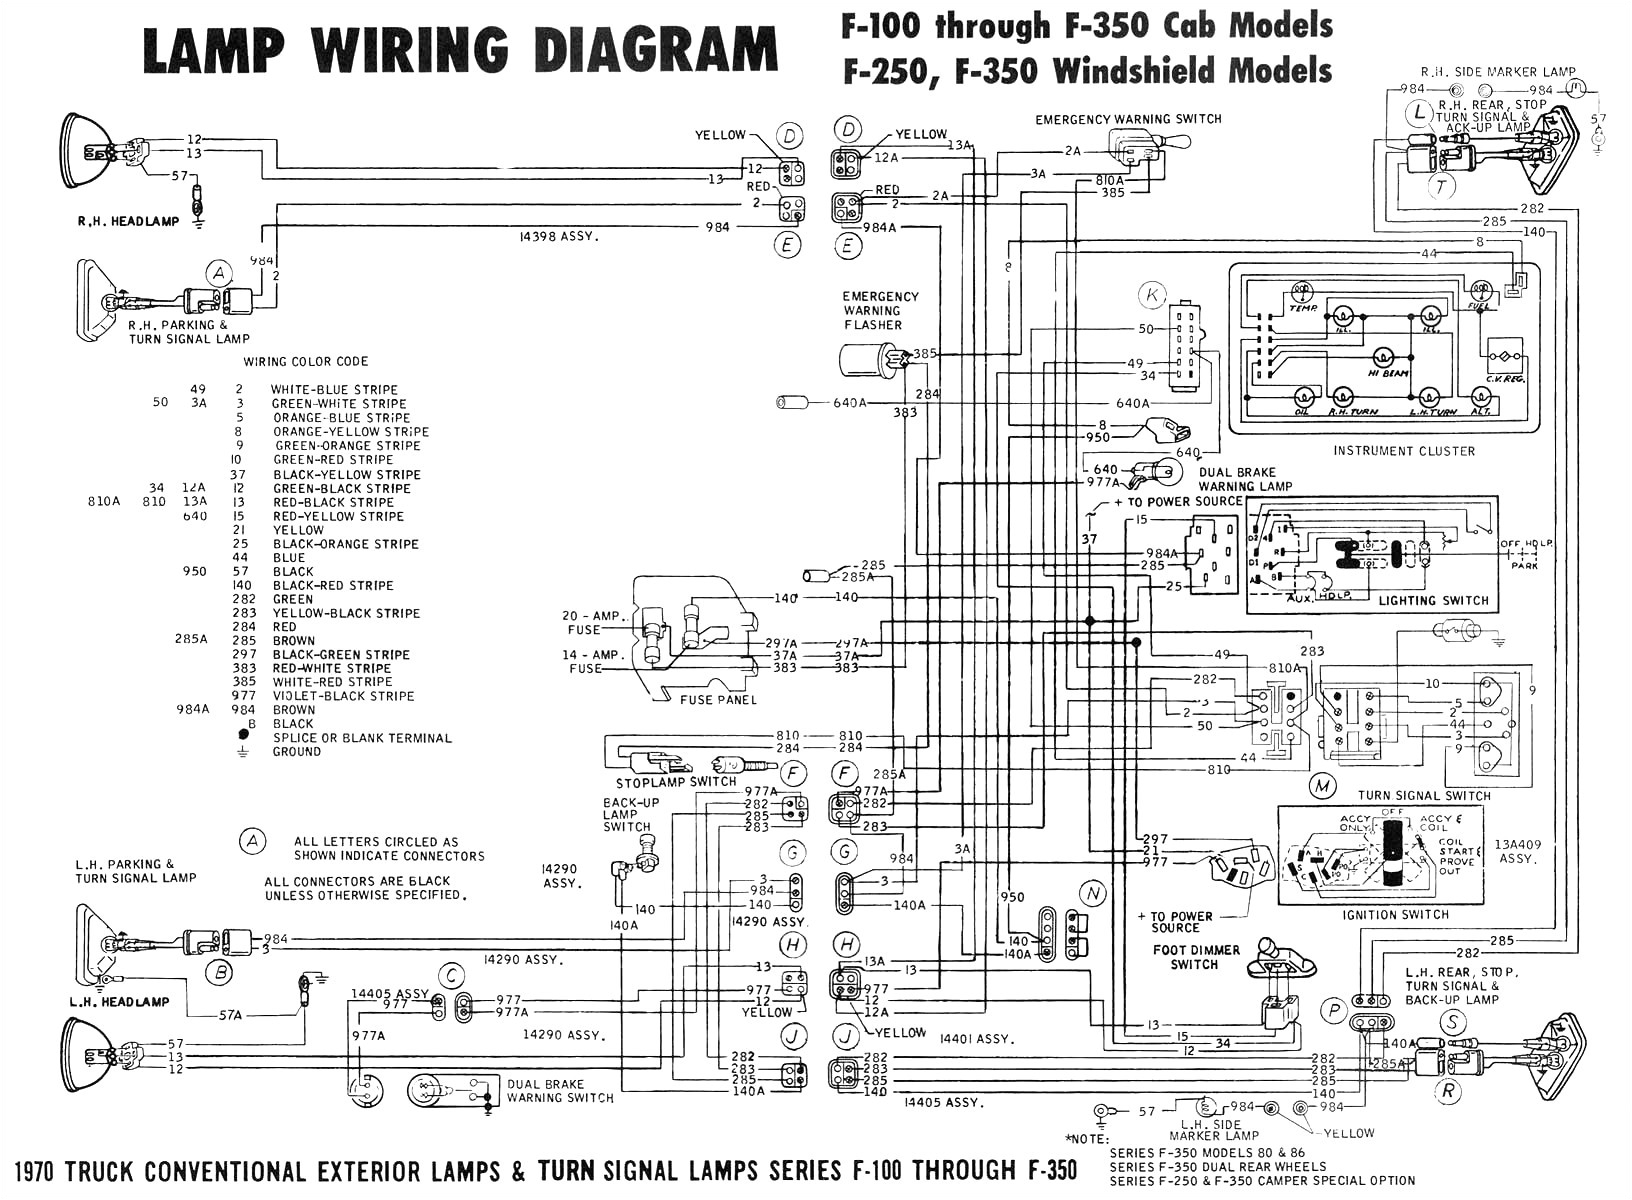 wiring diagram also 2001 chevy silverado fuel pump likewise 1998 diagrams likewise 2001 dodge ram 1500